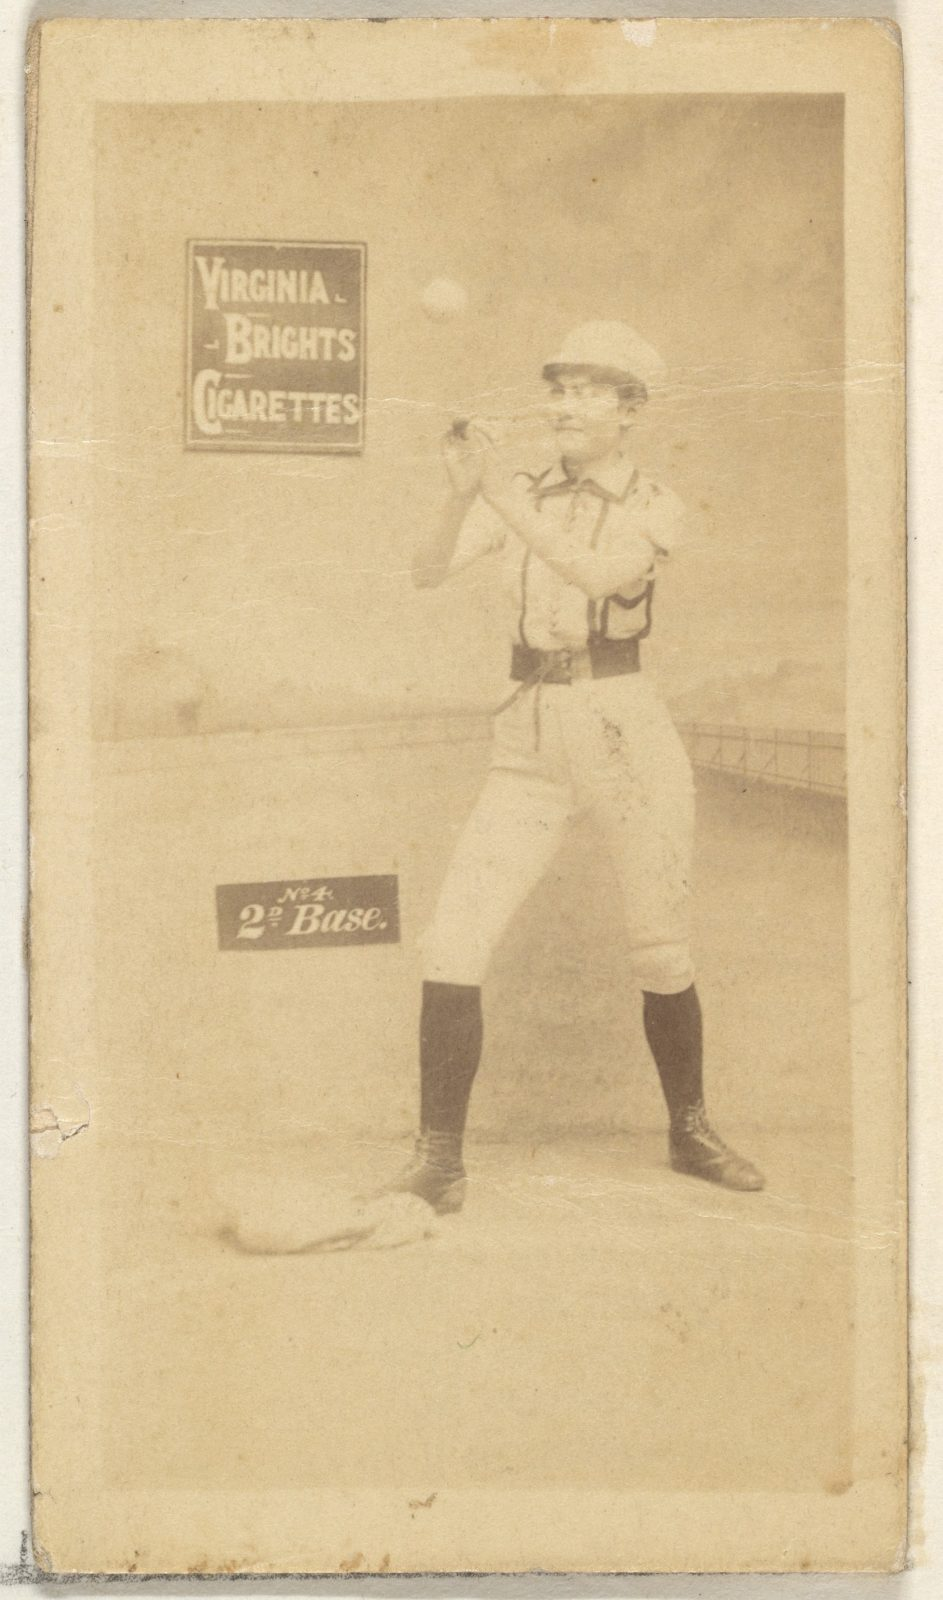 2nd Base, from the Girl Baseball Players series (N48, Type 2) for Virginia Brights Cigarettes